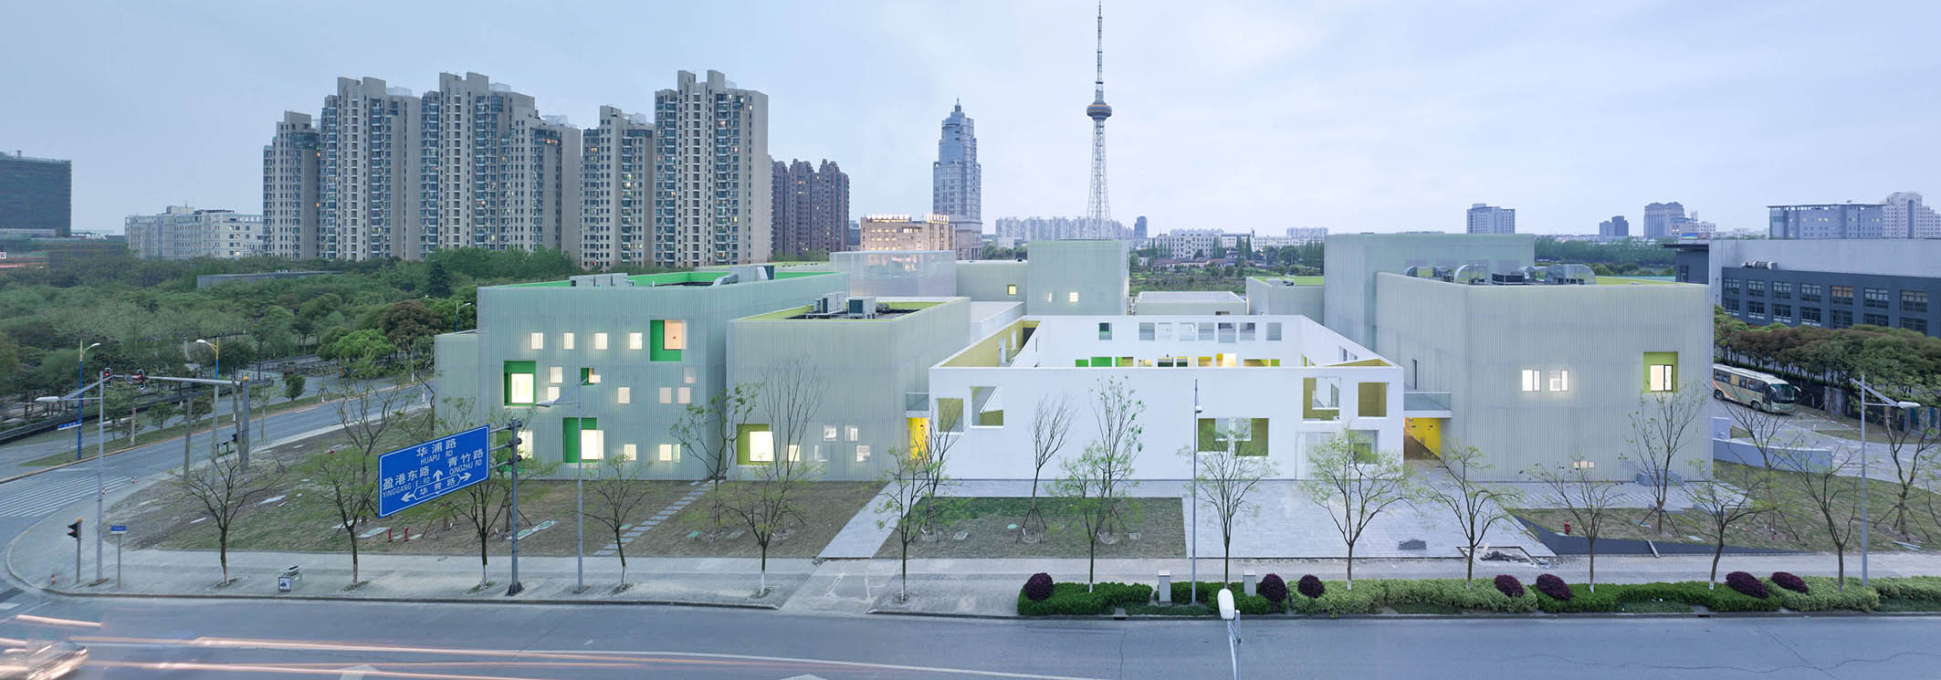 Atelier Deshaus: Youth Center of Qingpu, Shanghai, China, 2012. (Photo: © atelier deshaus)